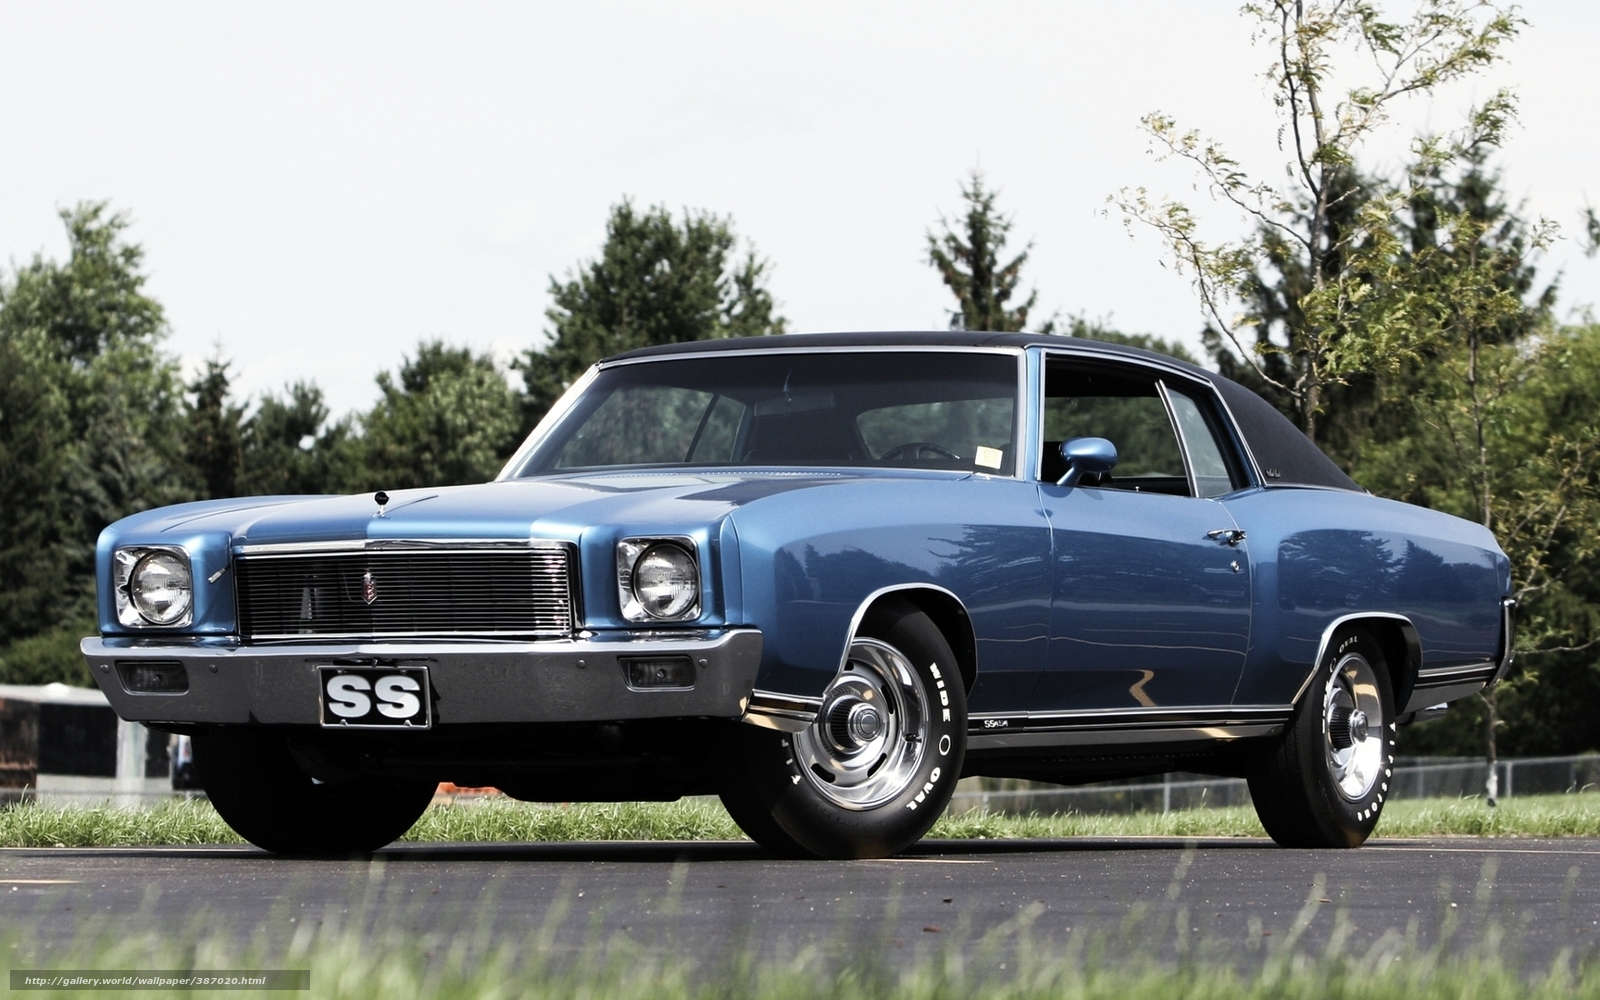 Download wallpaper chevrolet monte carlo front muscle car free desktop wallpaper in the resolution 1680x1050 picture 387020